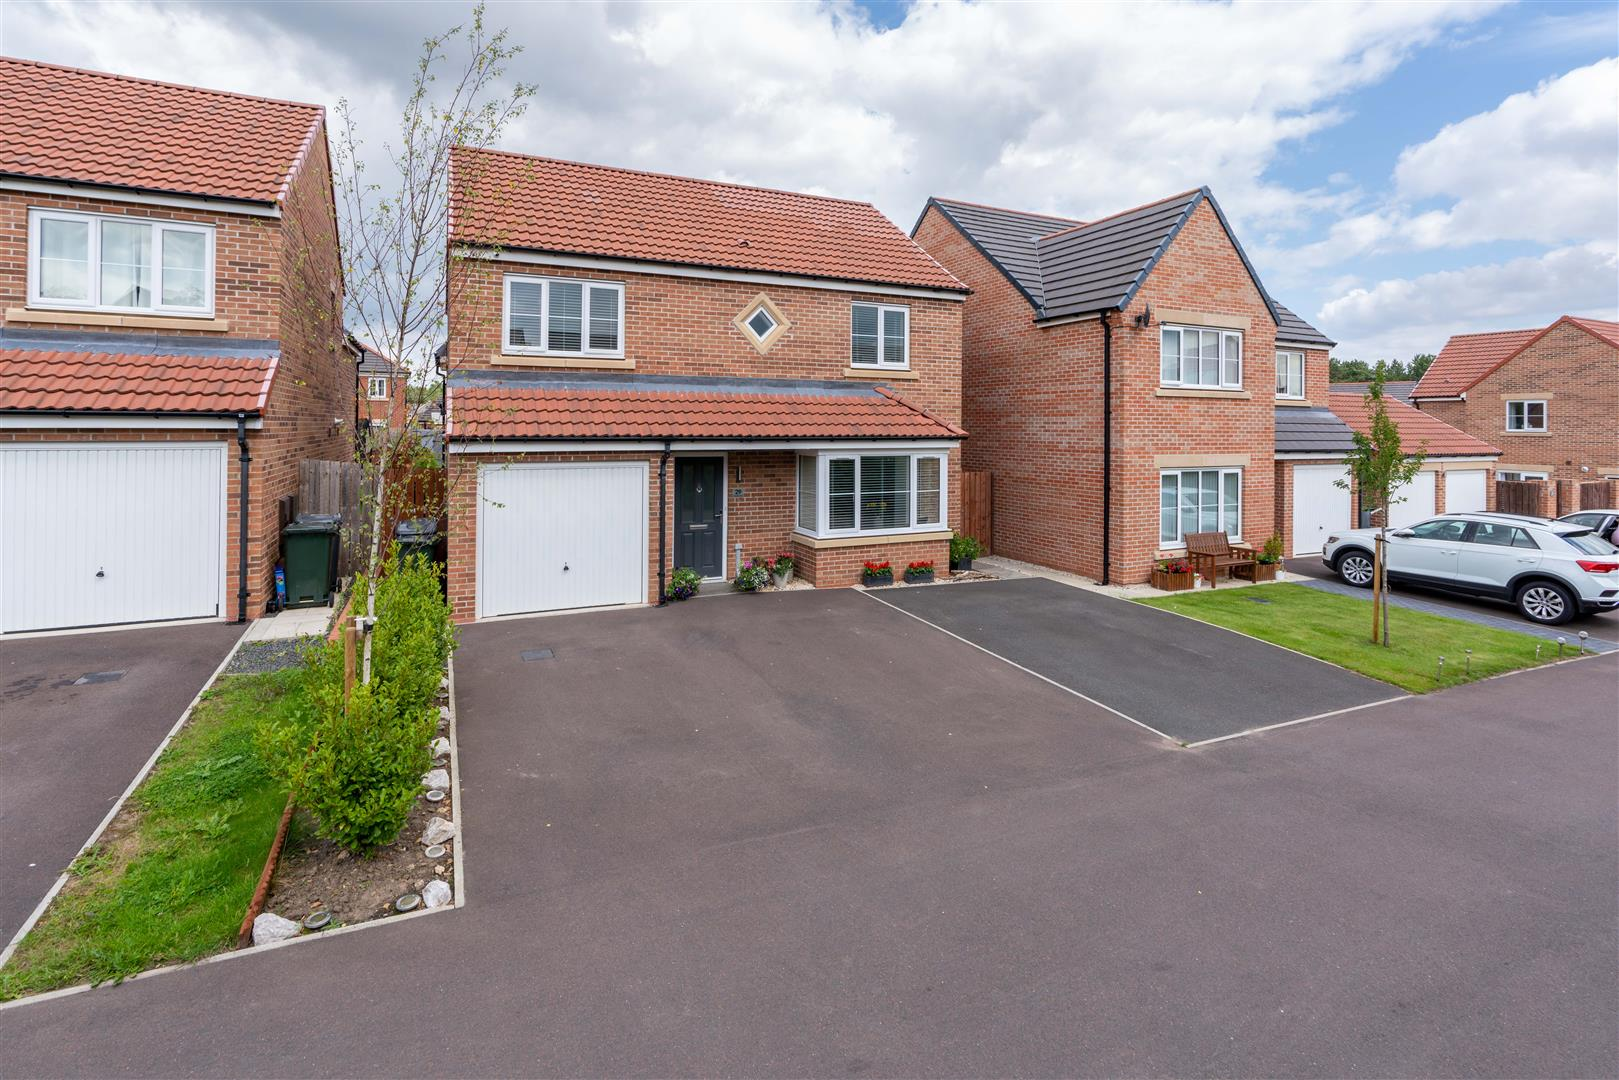 4 bed detached house for sale in Nuthatch Close, Five Mile Park, NE13